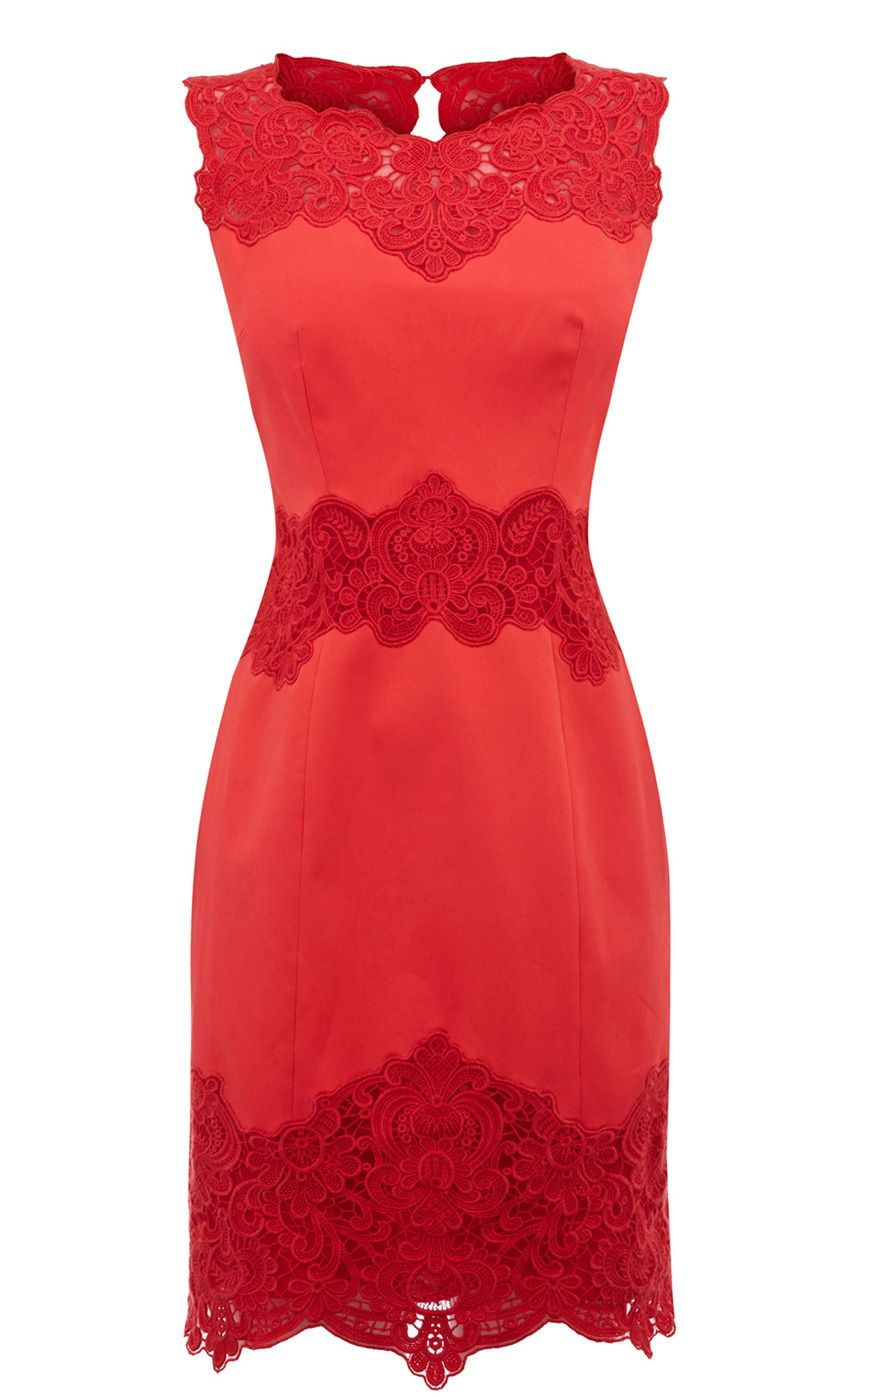 mix of lace | Red party dress | Pinterest | Durchsichtig, Sommer ...